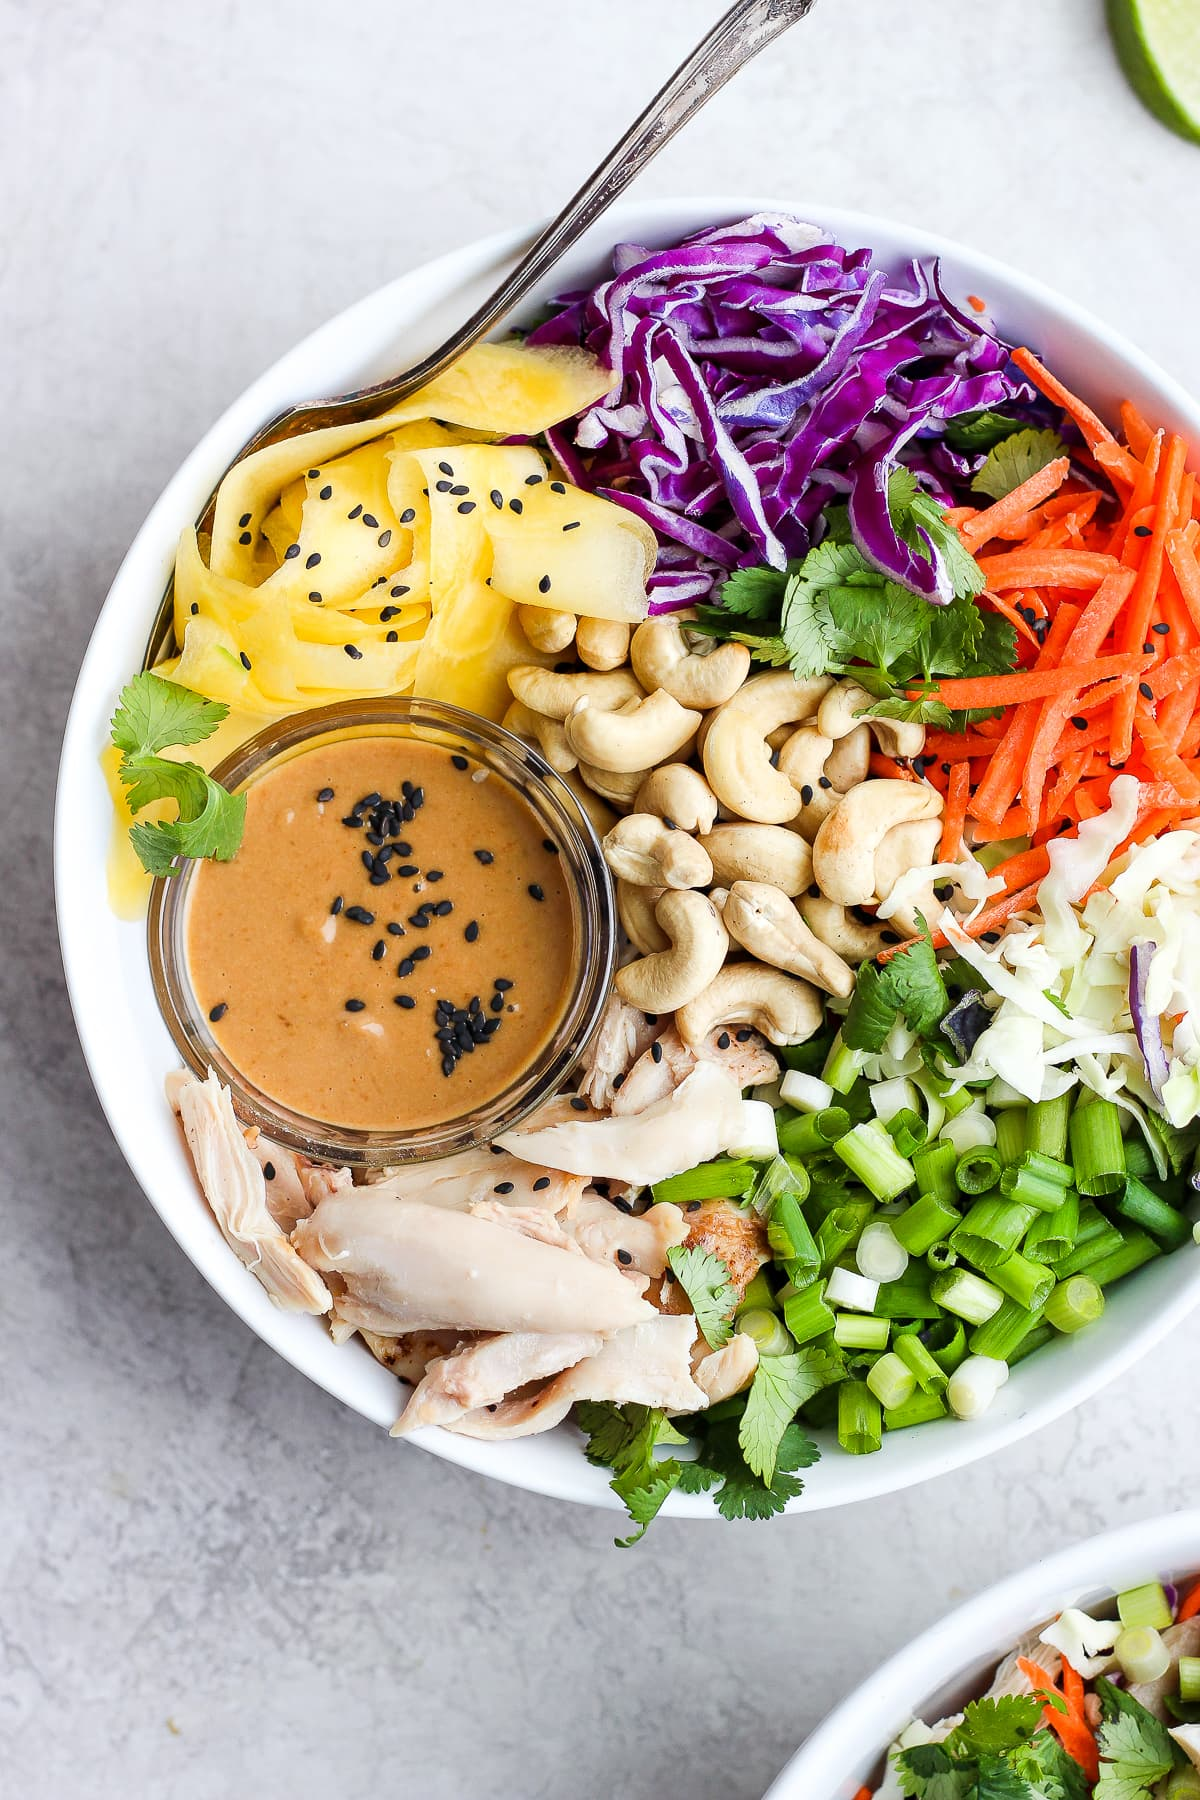 20 Minute Asian Chopped Rotisserie Chicken Salad - perfect for those nights when you have nothing else planned! #easyweeknightdinner #whole30recipes #whole30salad #choppedsalad #chickensalad #dairyfreerecipes #paleorecipes #30minutedinner